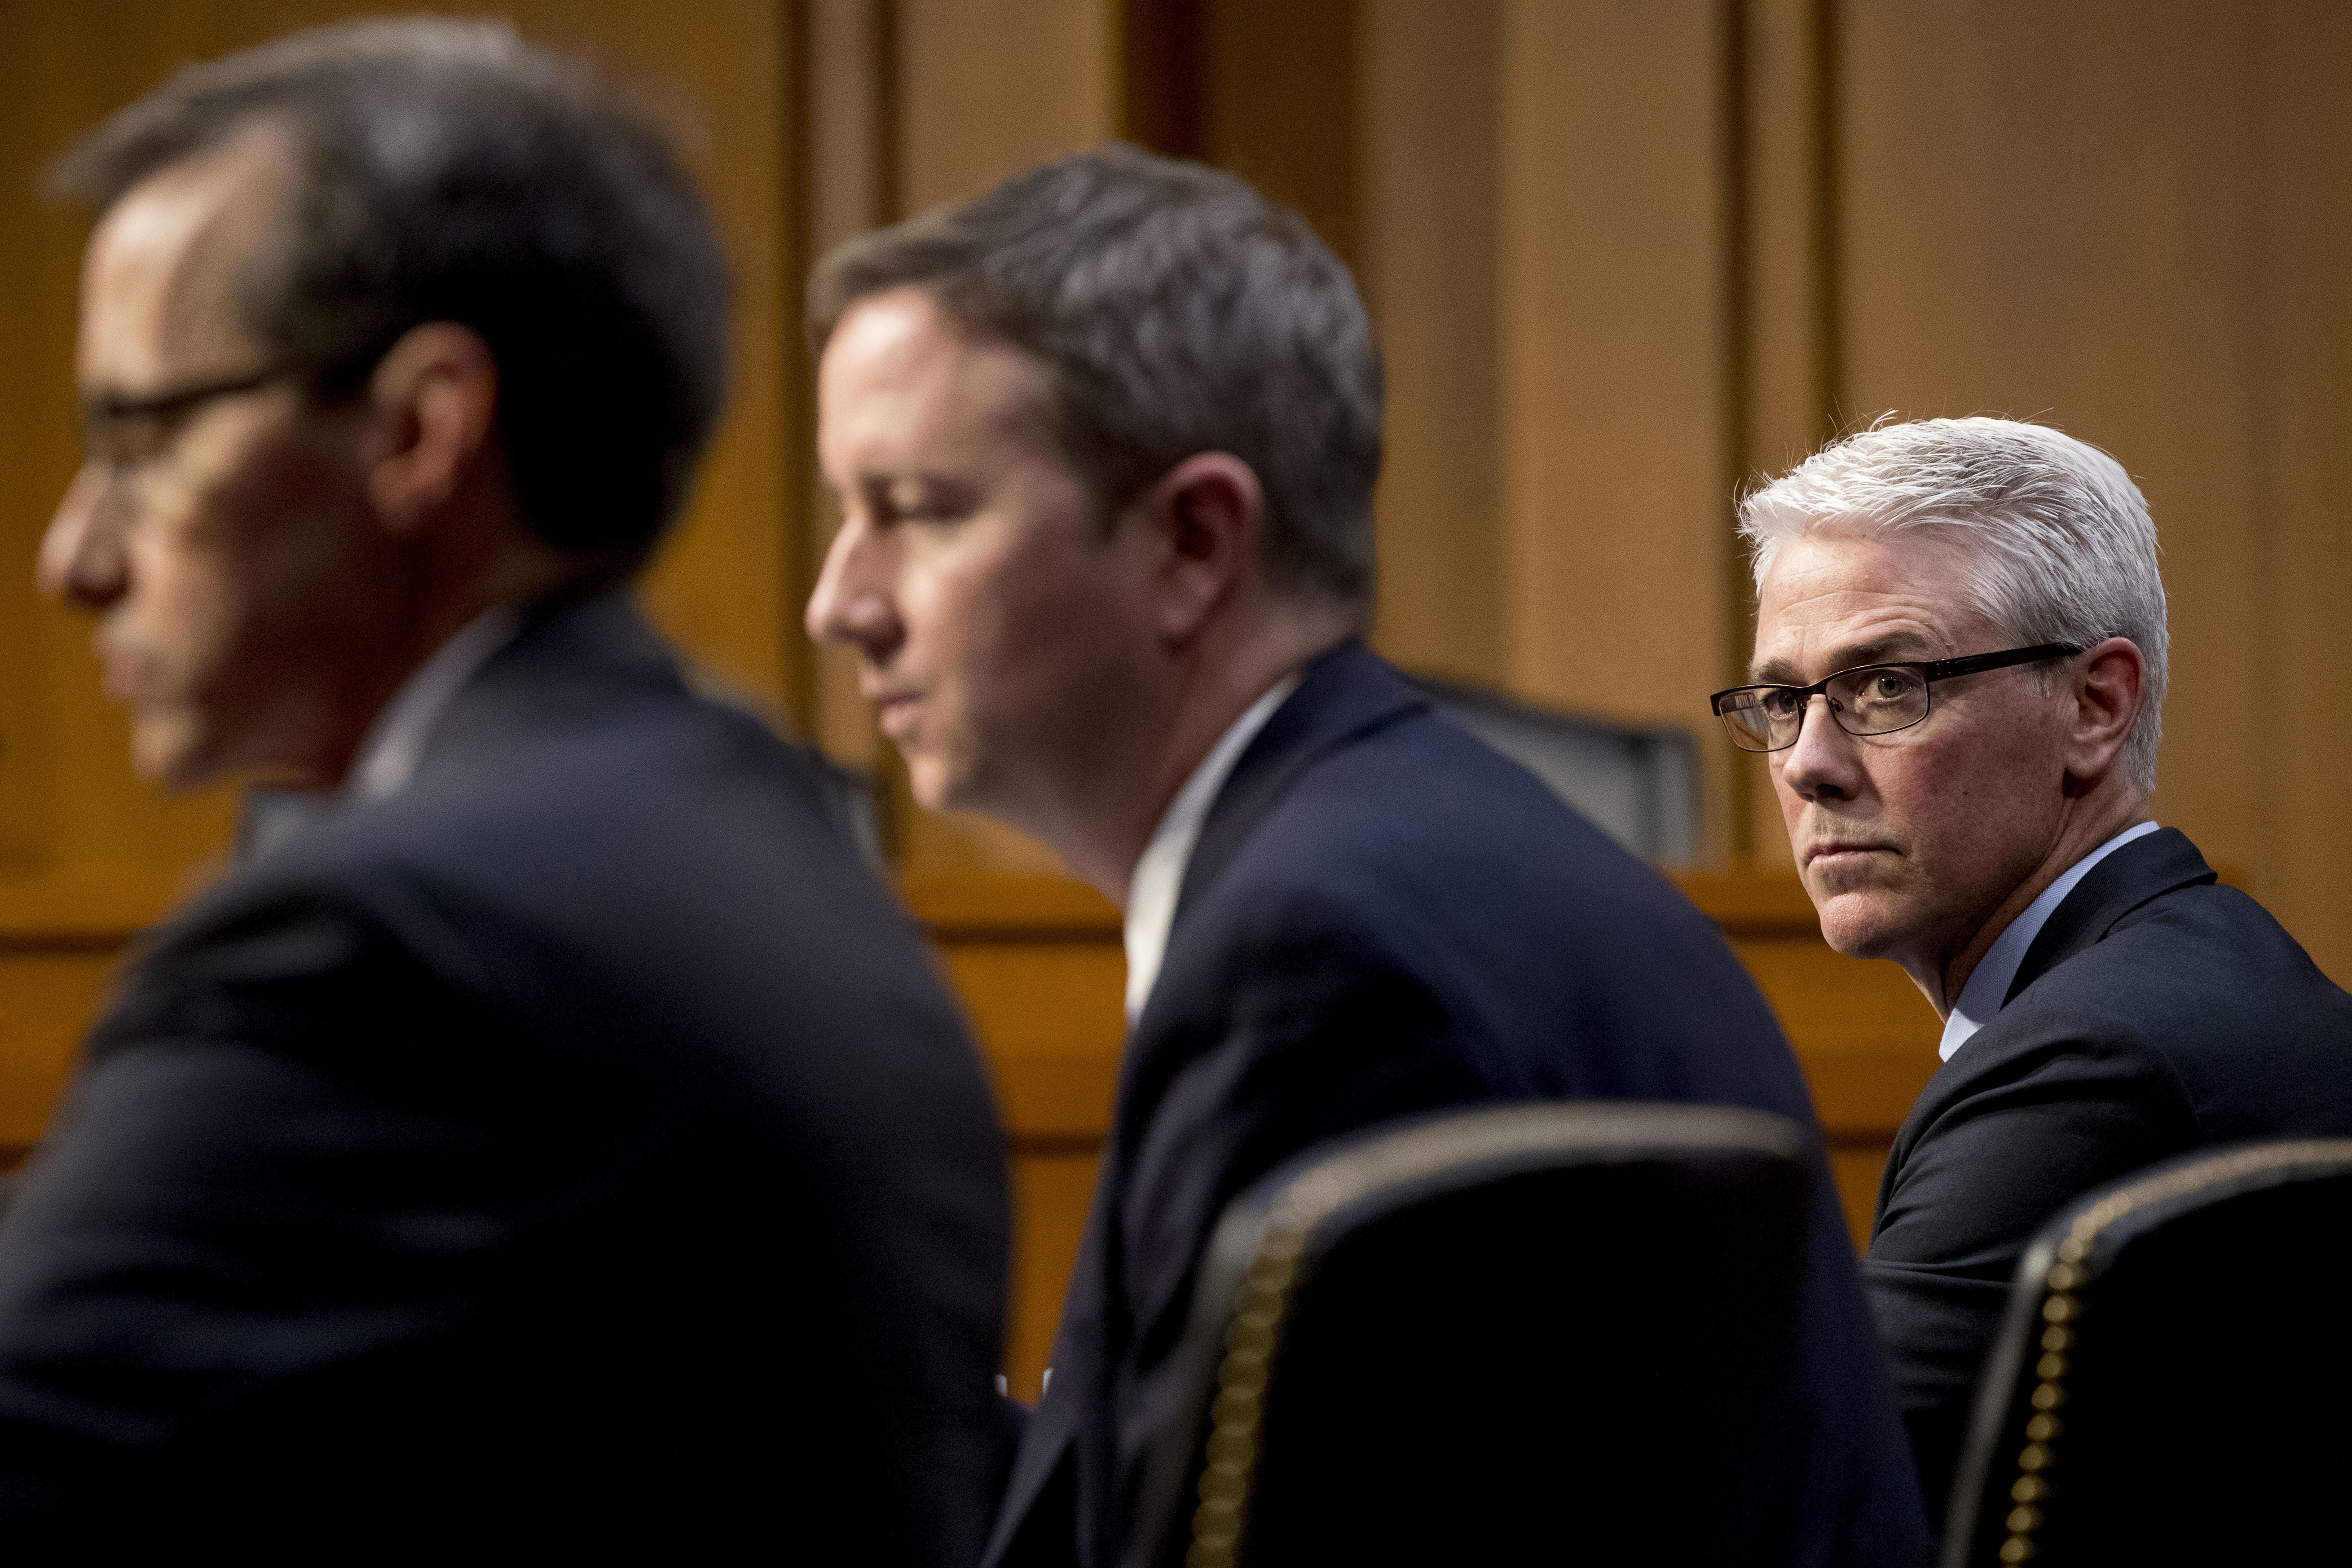 From left, Google's Law Enforcement and Information Security Director Richard Salgado, Twitter's Acting General Counsel Sean Edgett, and Facebook's General Counsel Colin Stretch, appear together during a Senate Committee on the Judiciary, Subcommittee on Crime and Terrorism hearing on Capitol Hill in Washington, Tuesday, Oct. 31, 2017. (AP Photo/Andrew Harnik)<p></p>